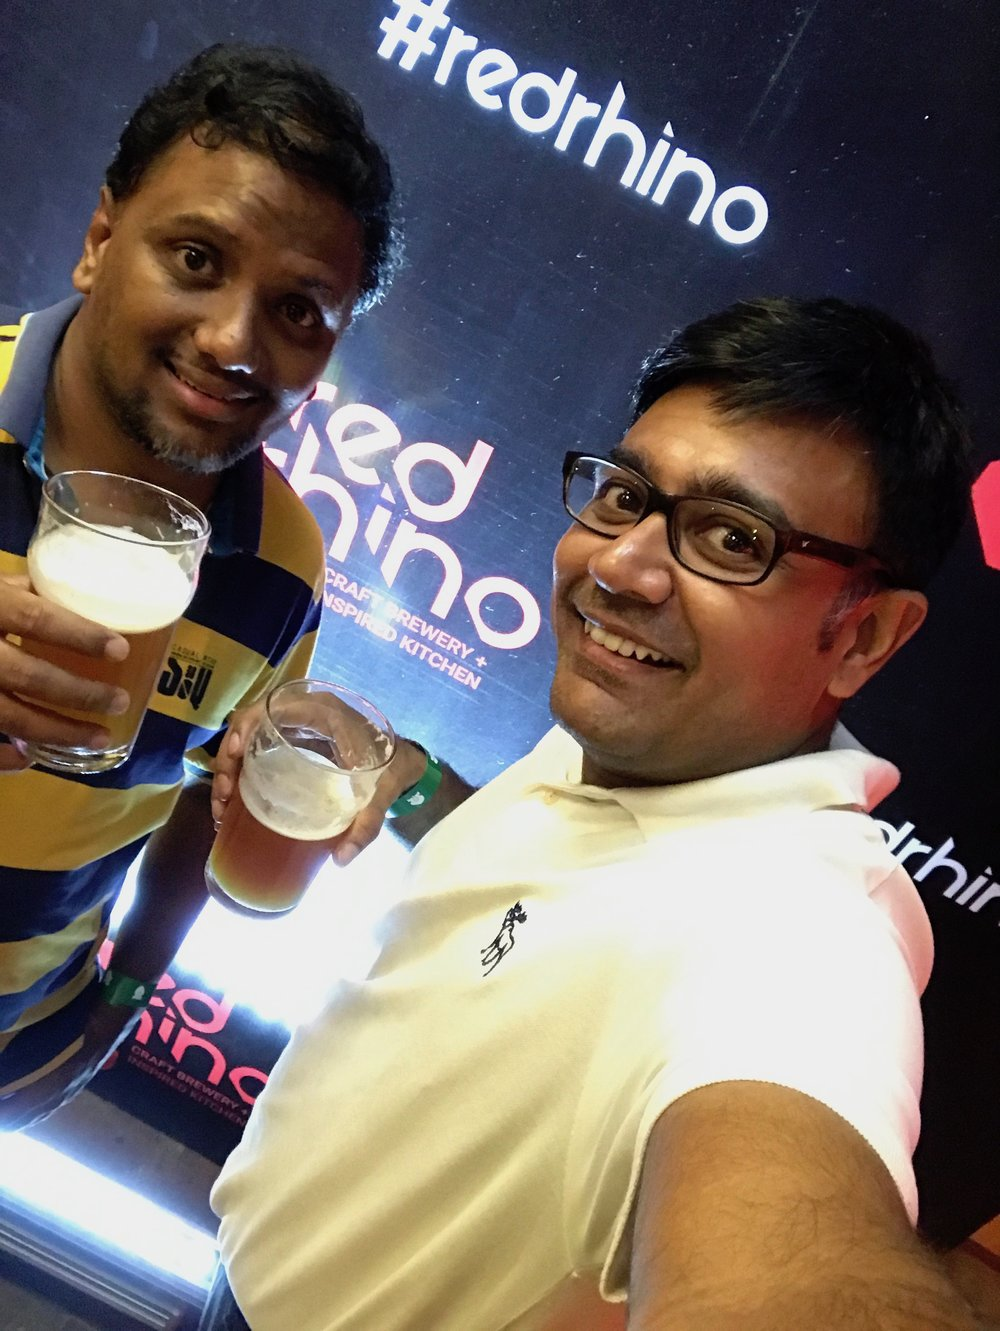 Selfie at Microbrewery | Red Rhino | Bengaluru | PritishSocial | Food Blogger